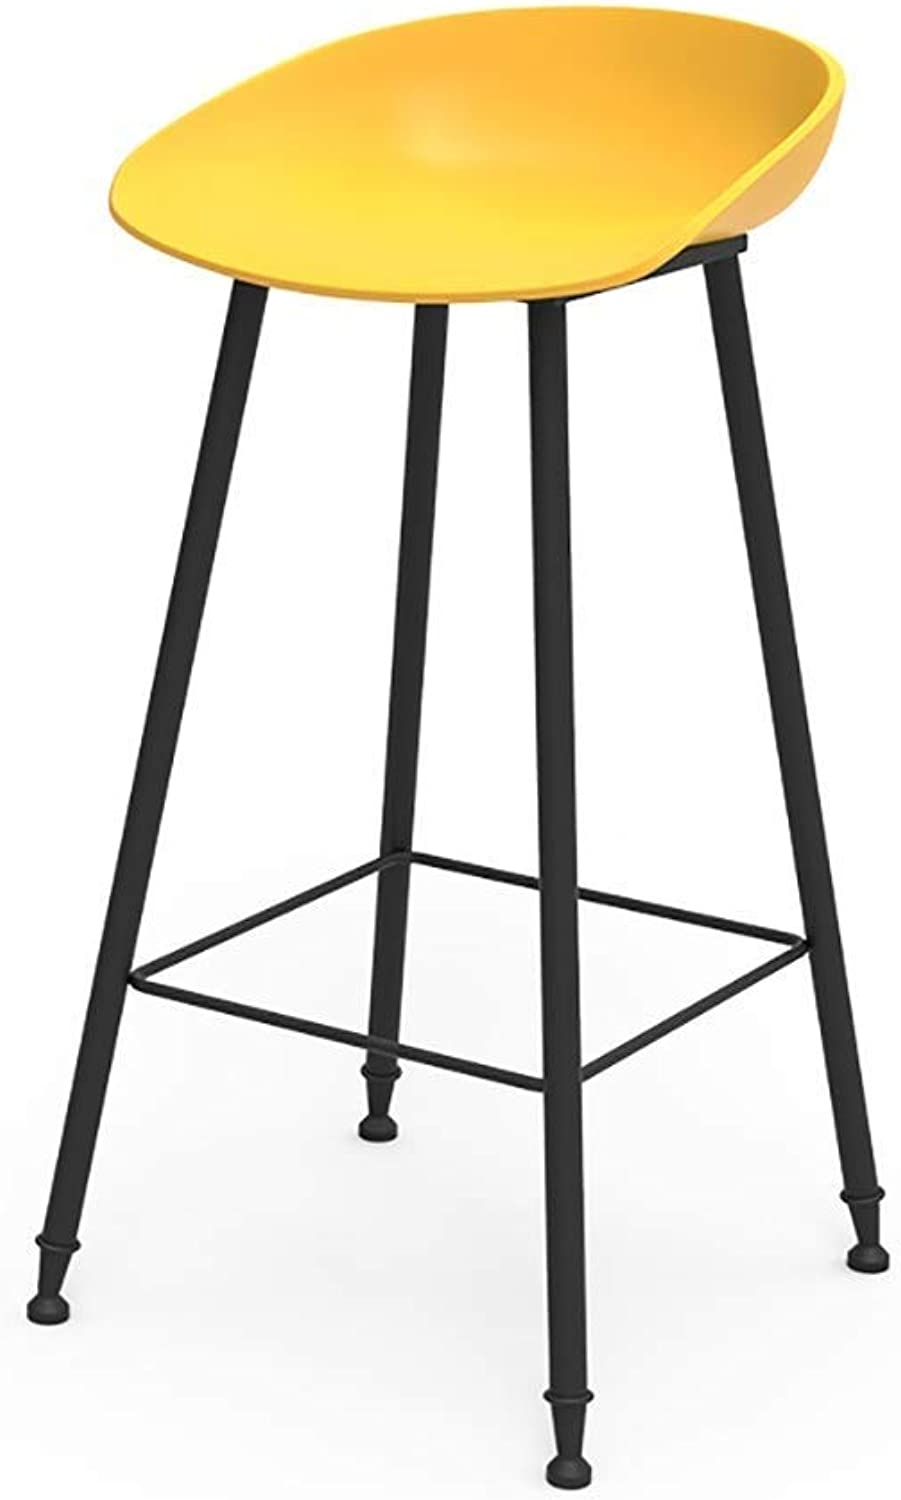 Bar Stool, bar Chair;Counter Chair;High Stool, Home Breakfast Iron Lounge Chair PP Cushion;Steel Bracket;Height 65 75cm 3 colors JINRONG (color   Yellow, Size   65CM)